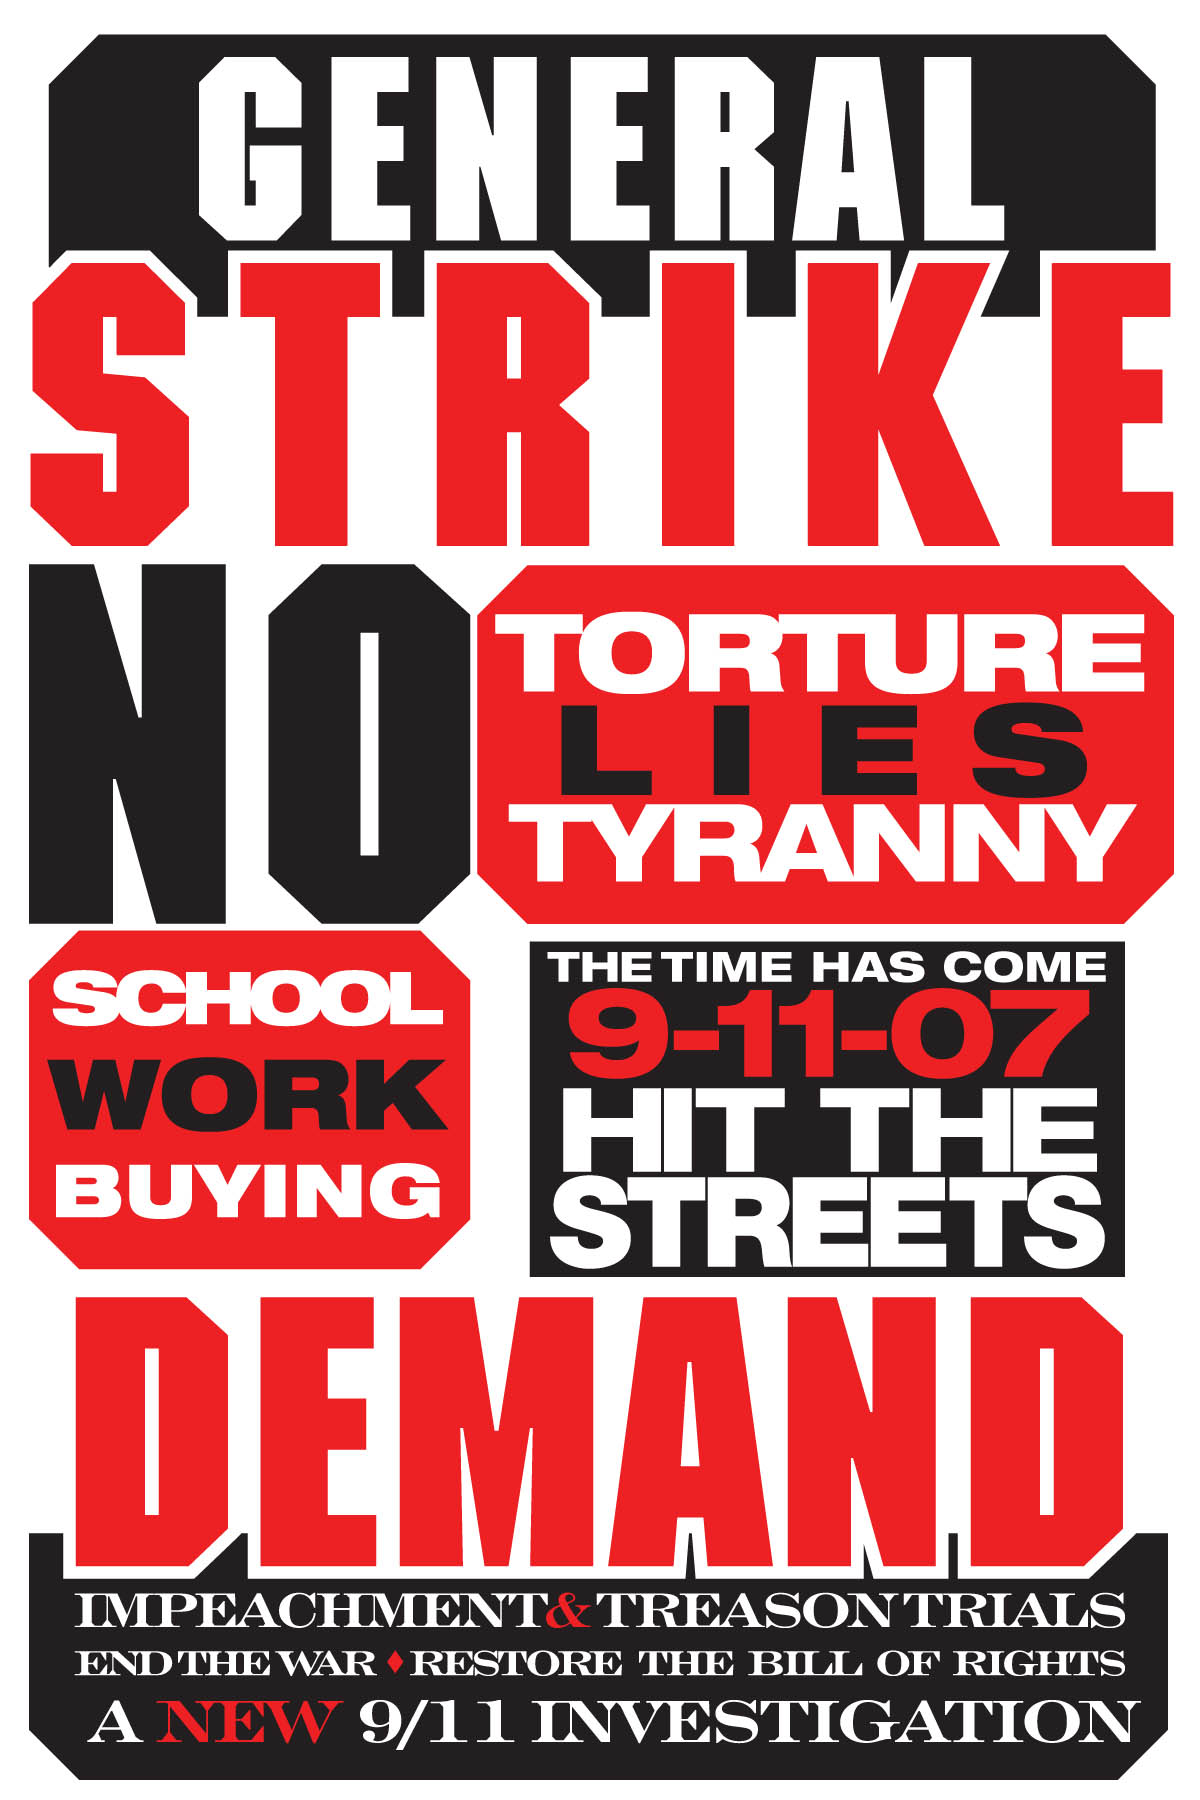 GENERAL STRIKE 9-11-07